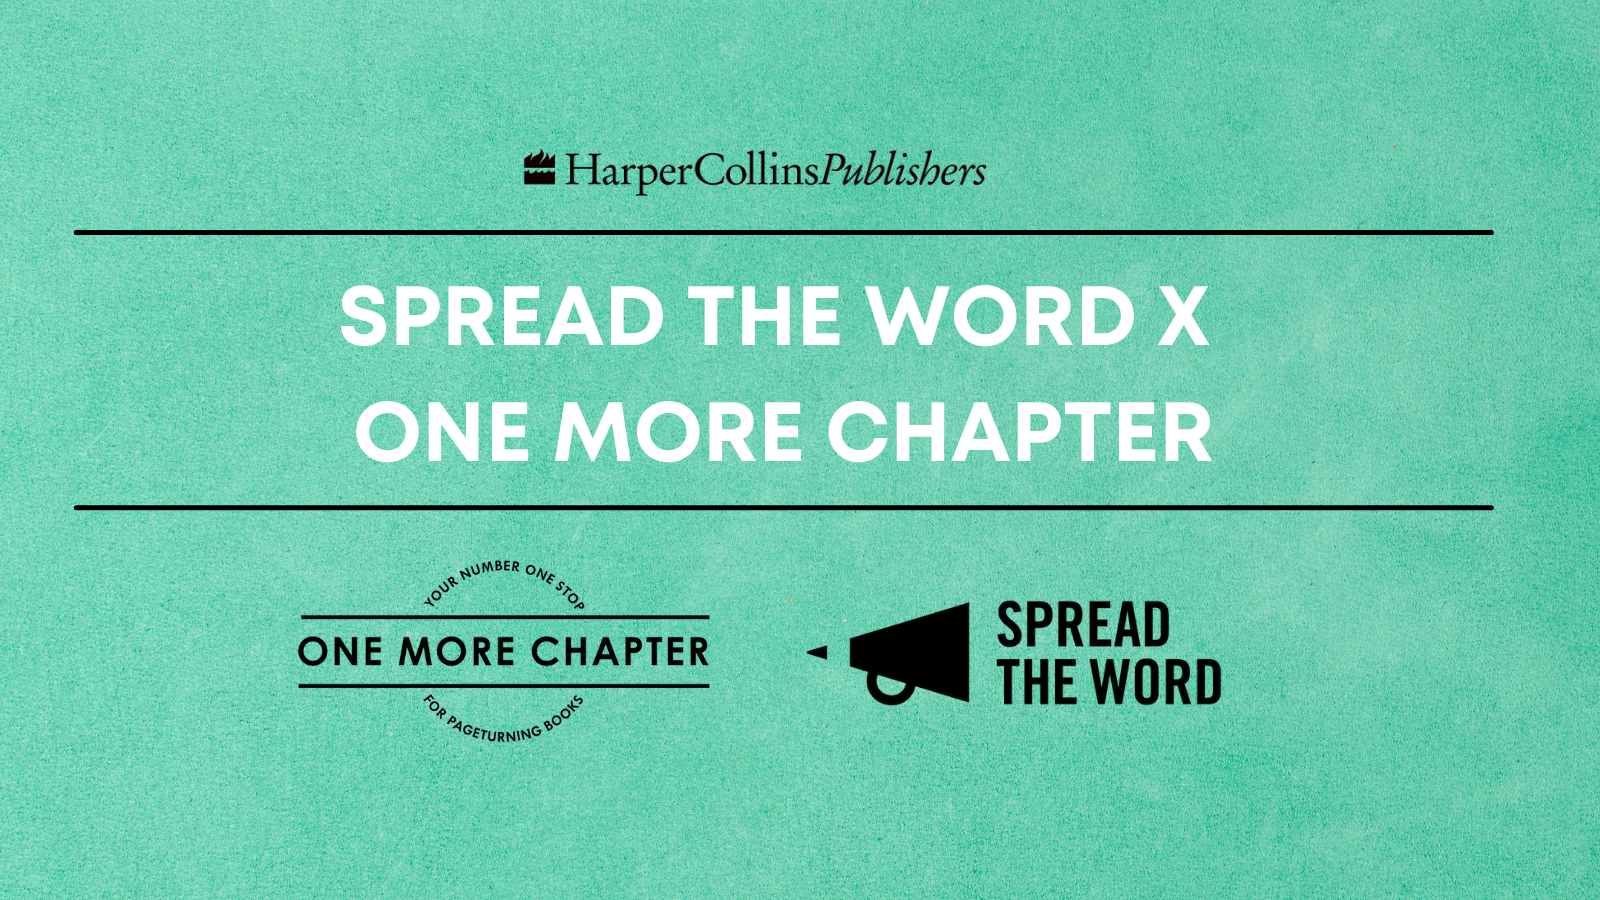 Spread the Word and One More Chapter logos on a mint green background